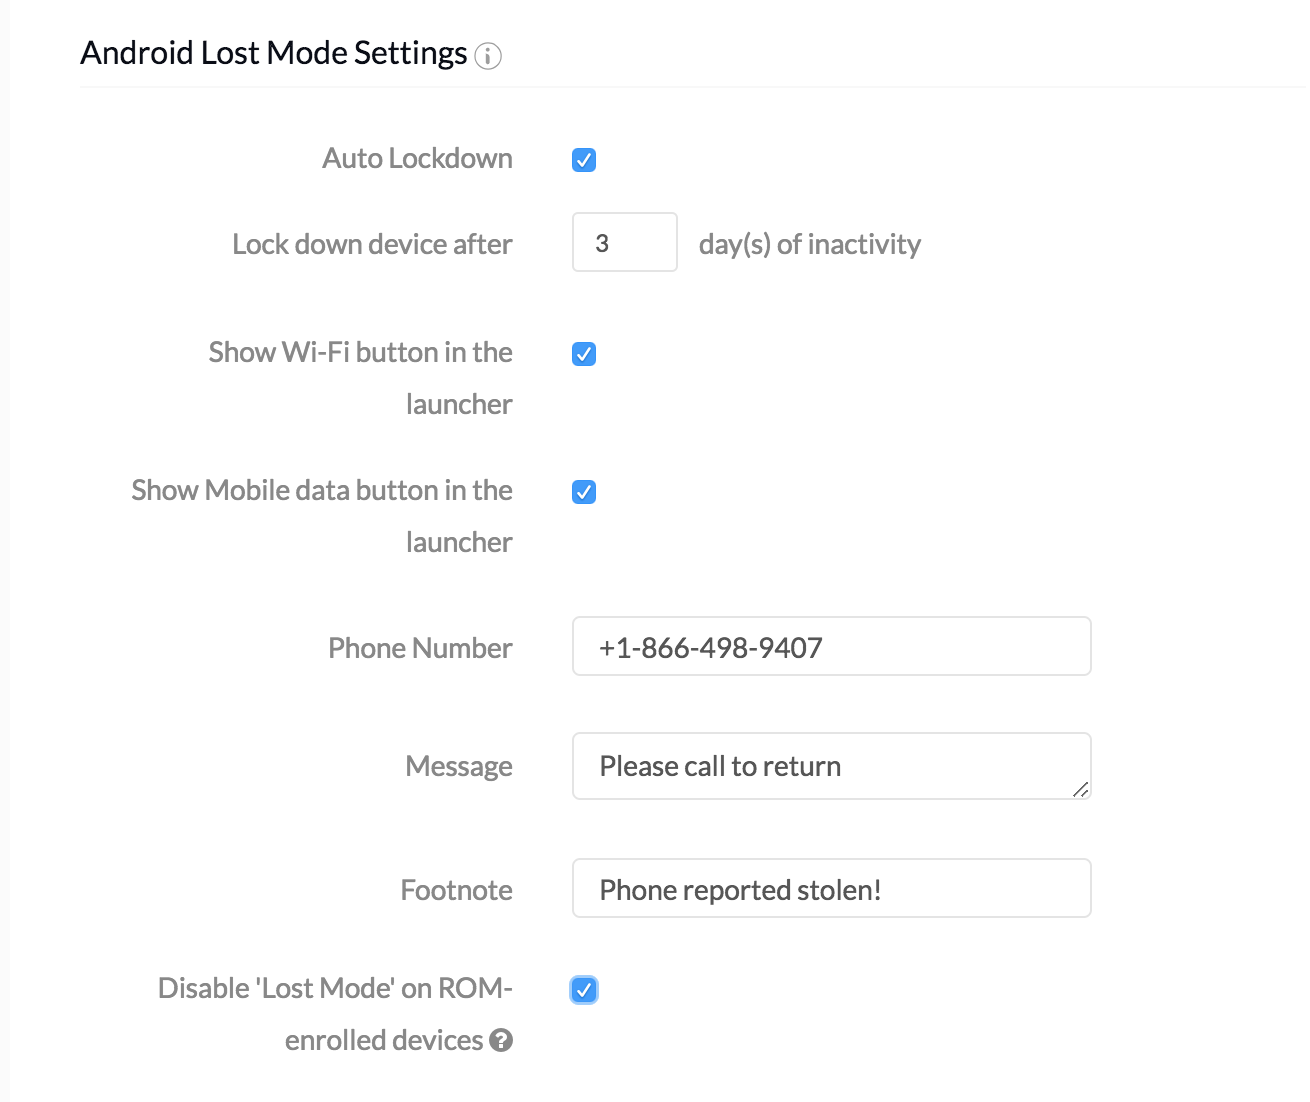 Android lost mode settings